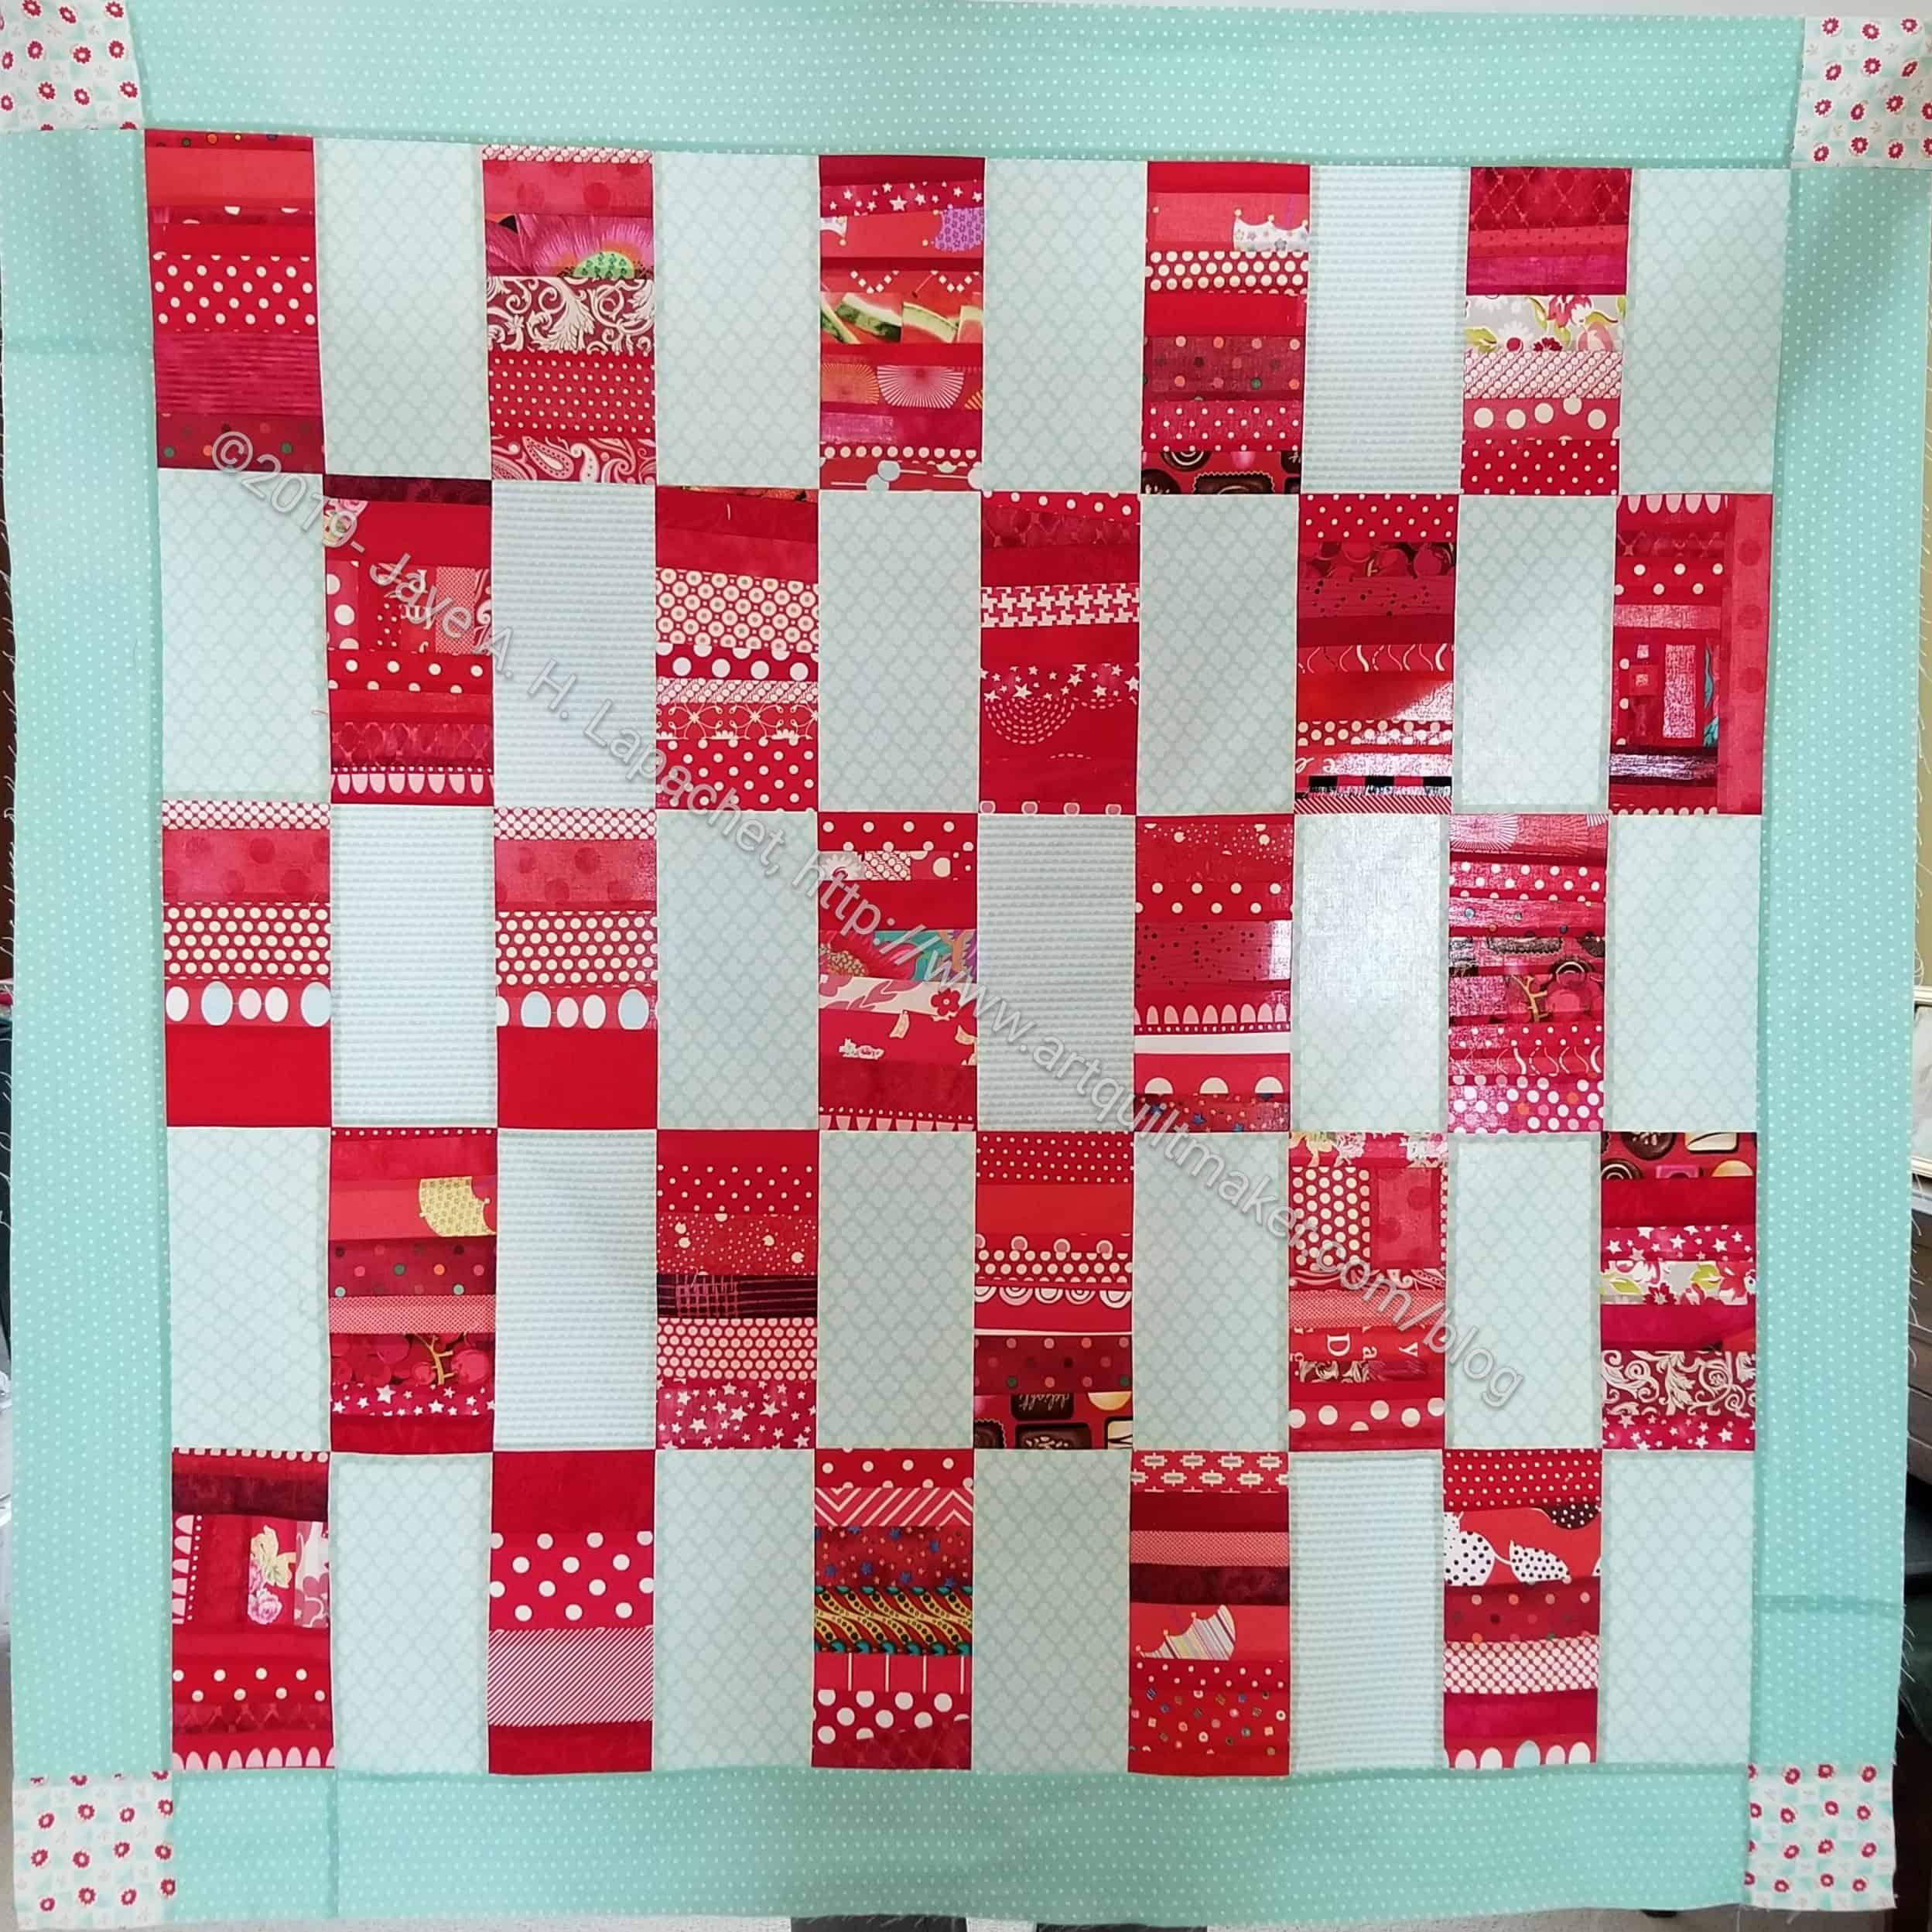 Finished Red Strip Donation Top Artquiltmaker Blog